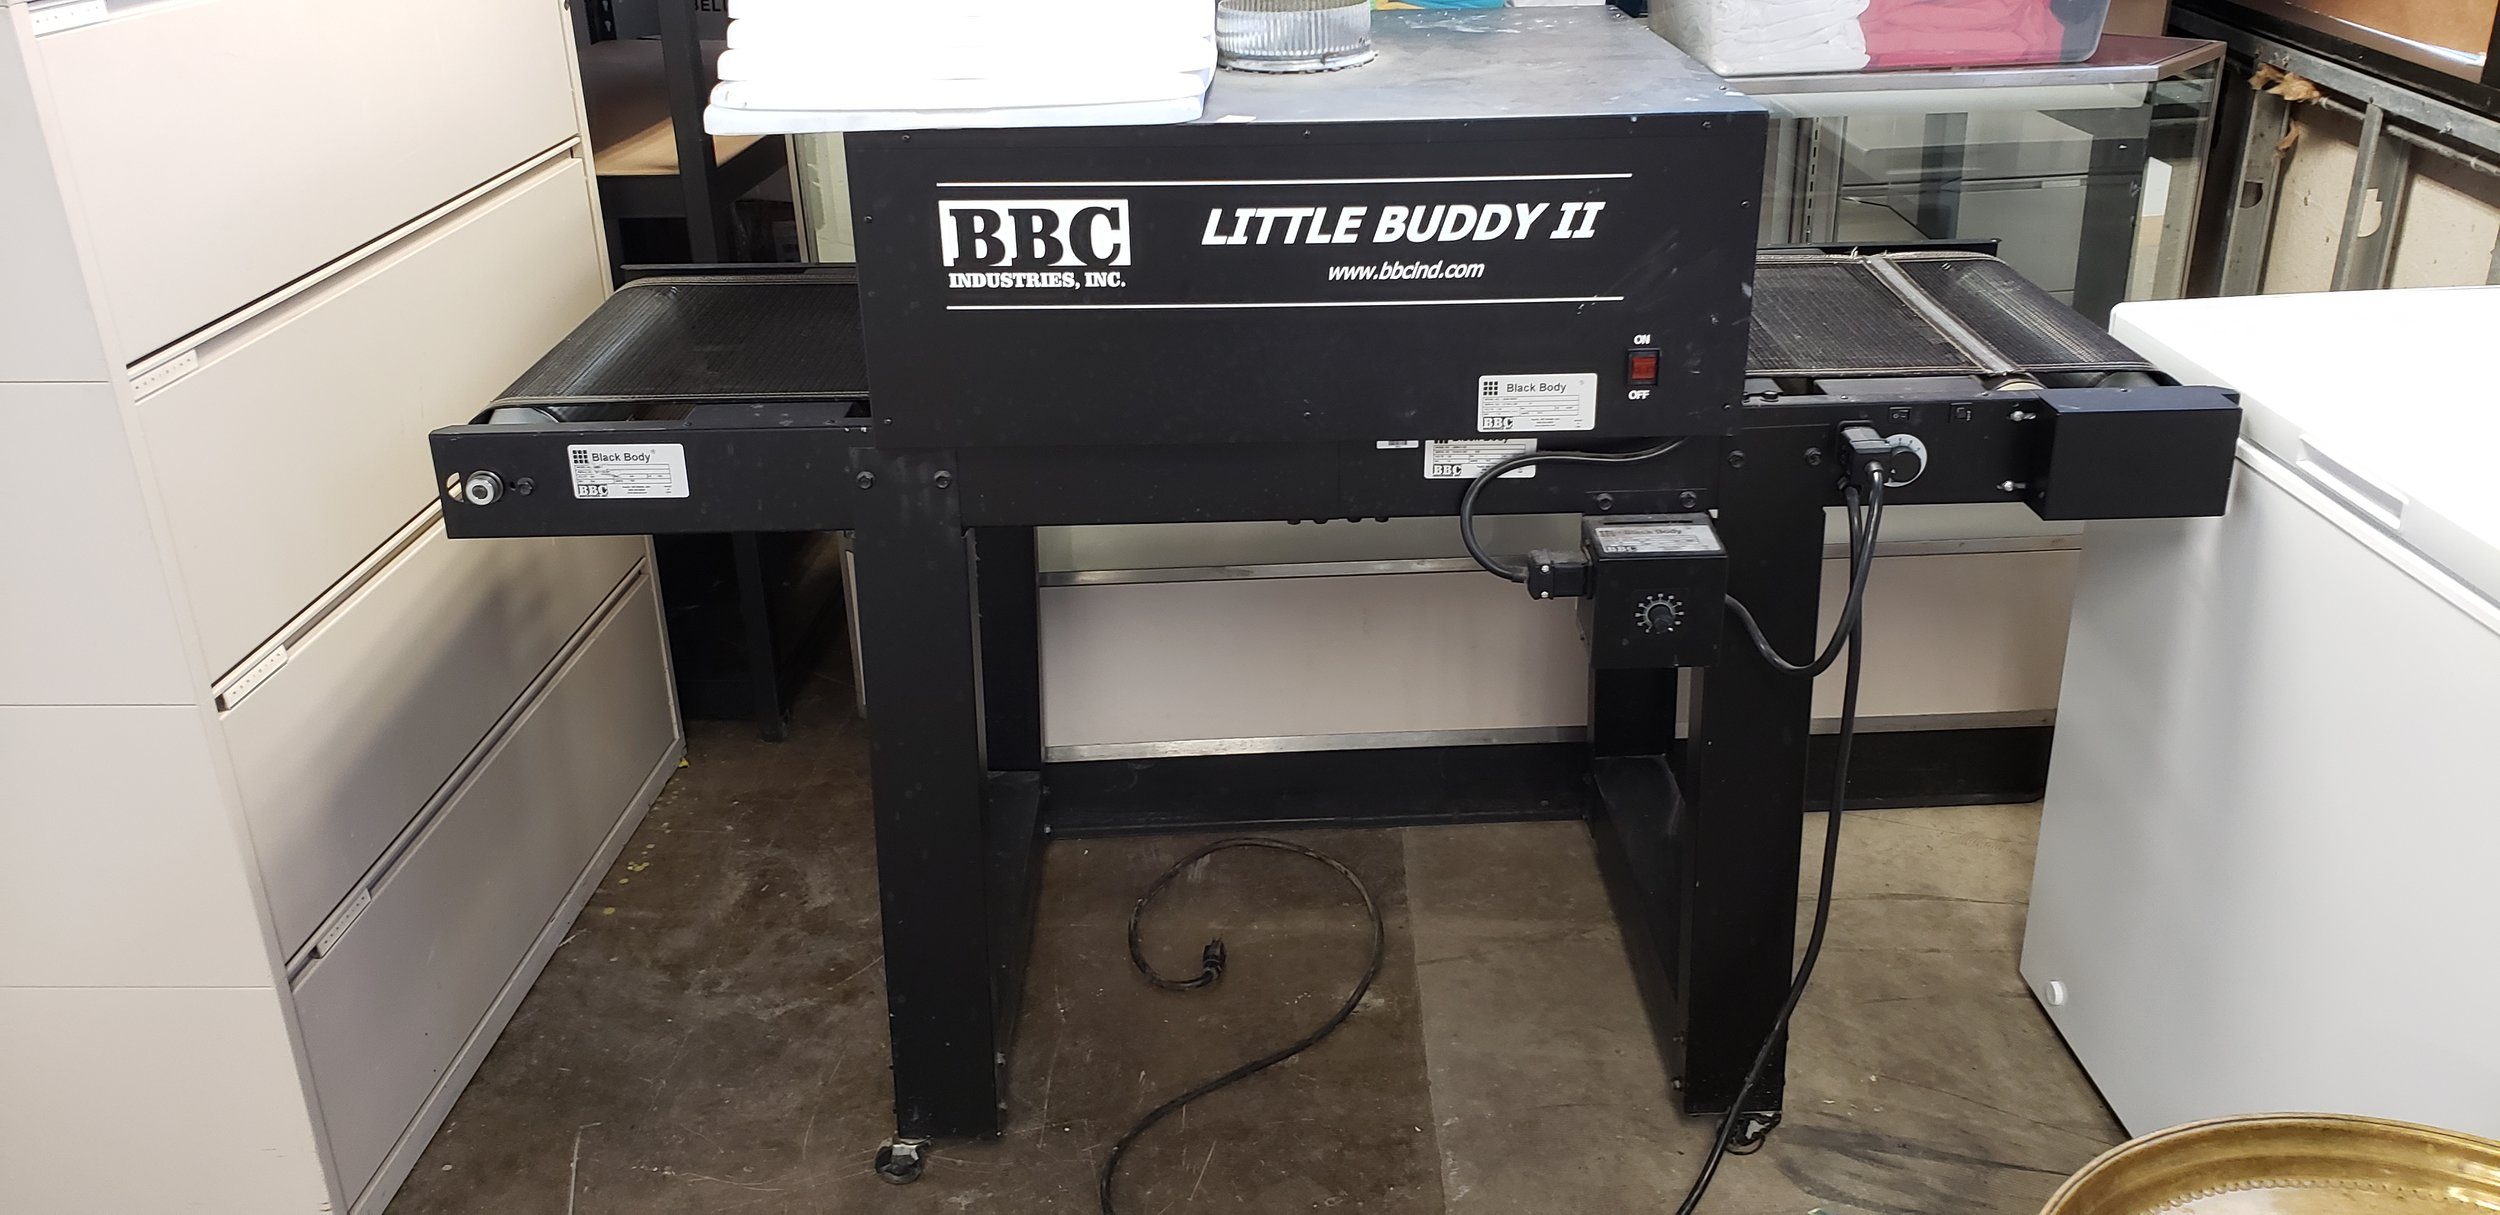 Little Buddy II s-1500.jpg